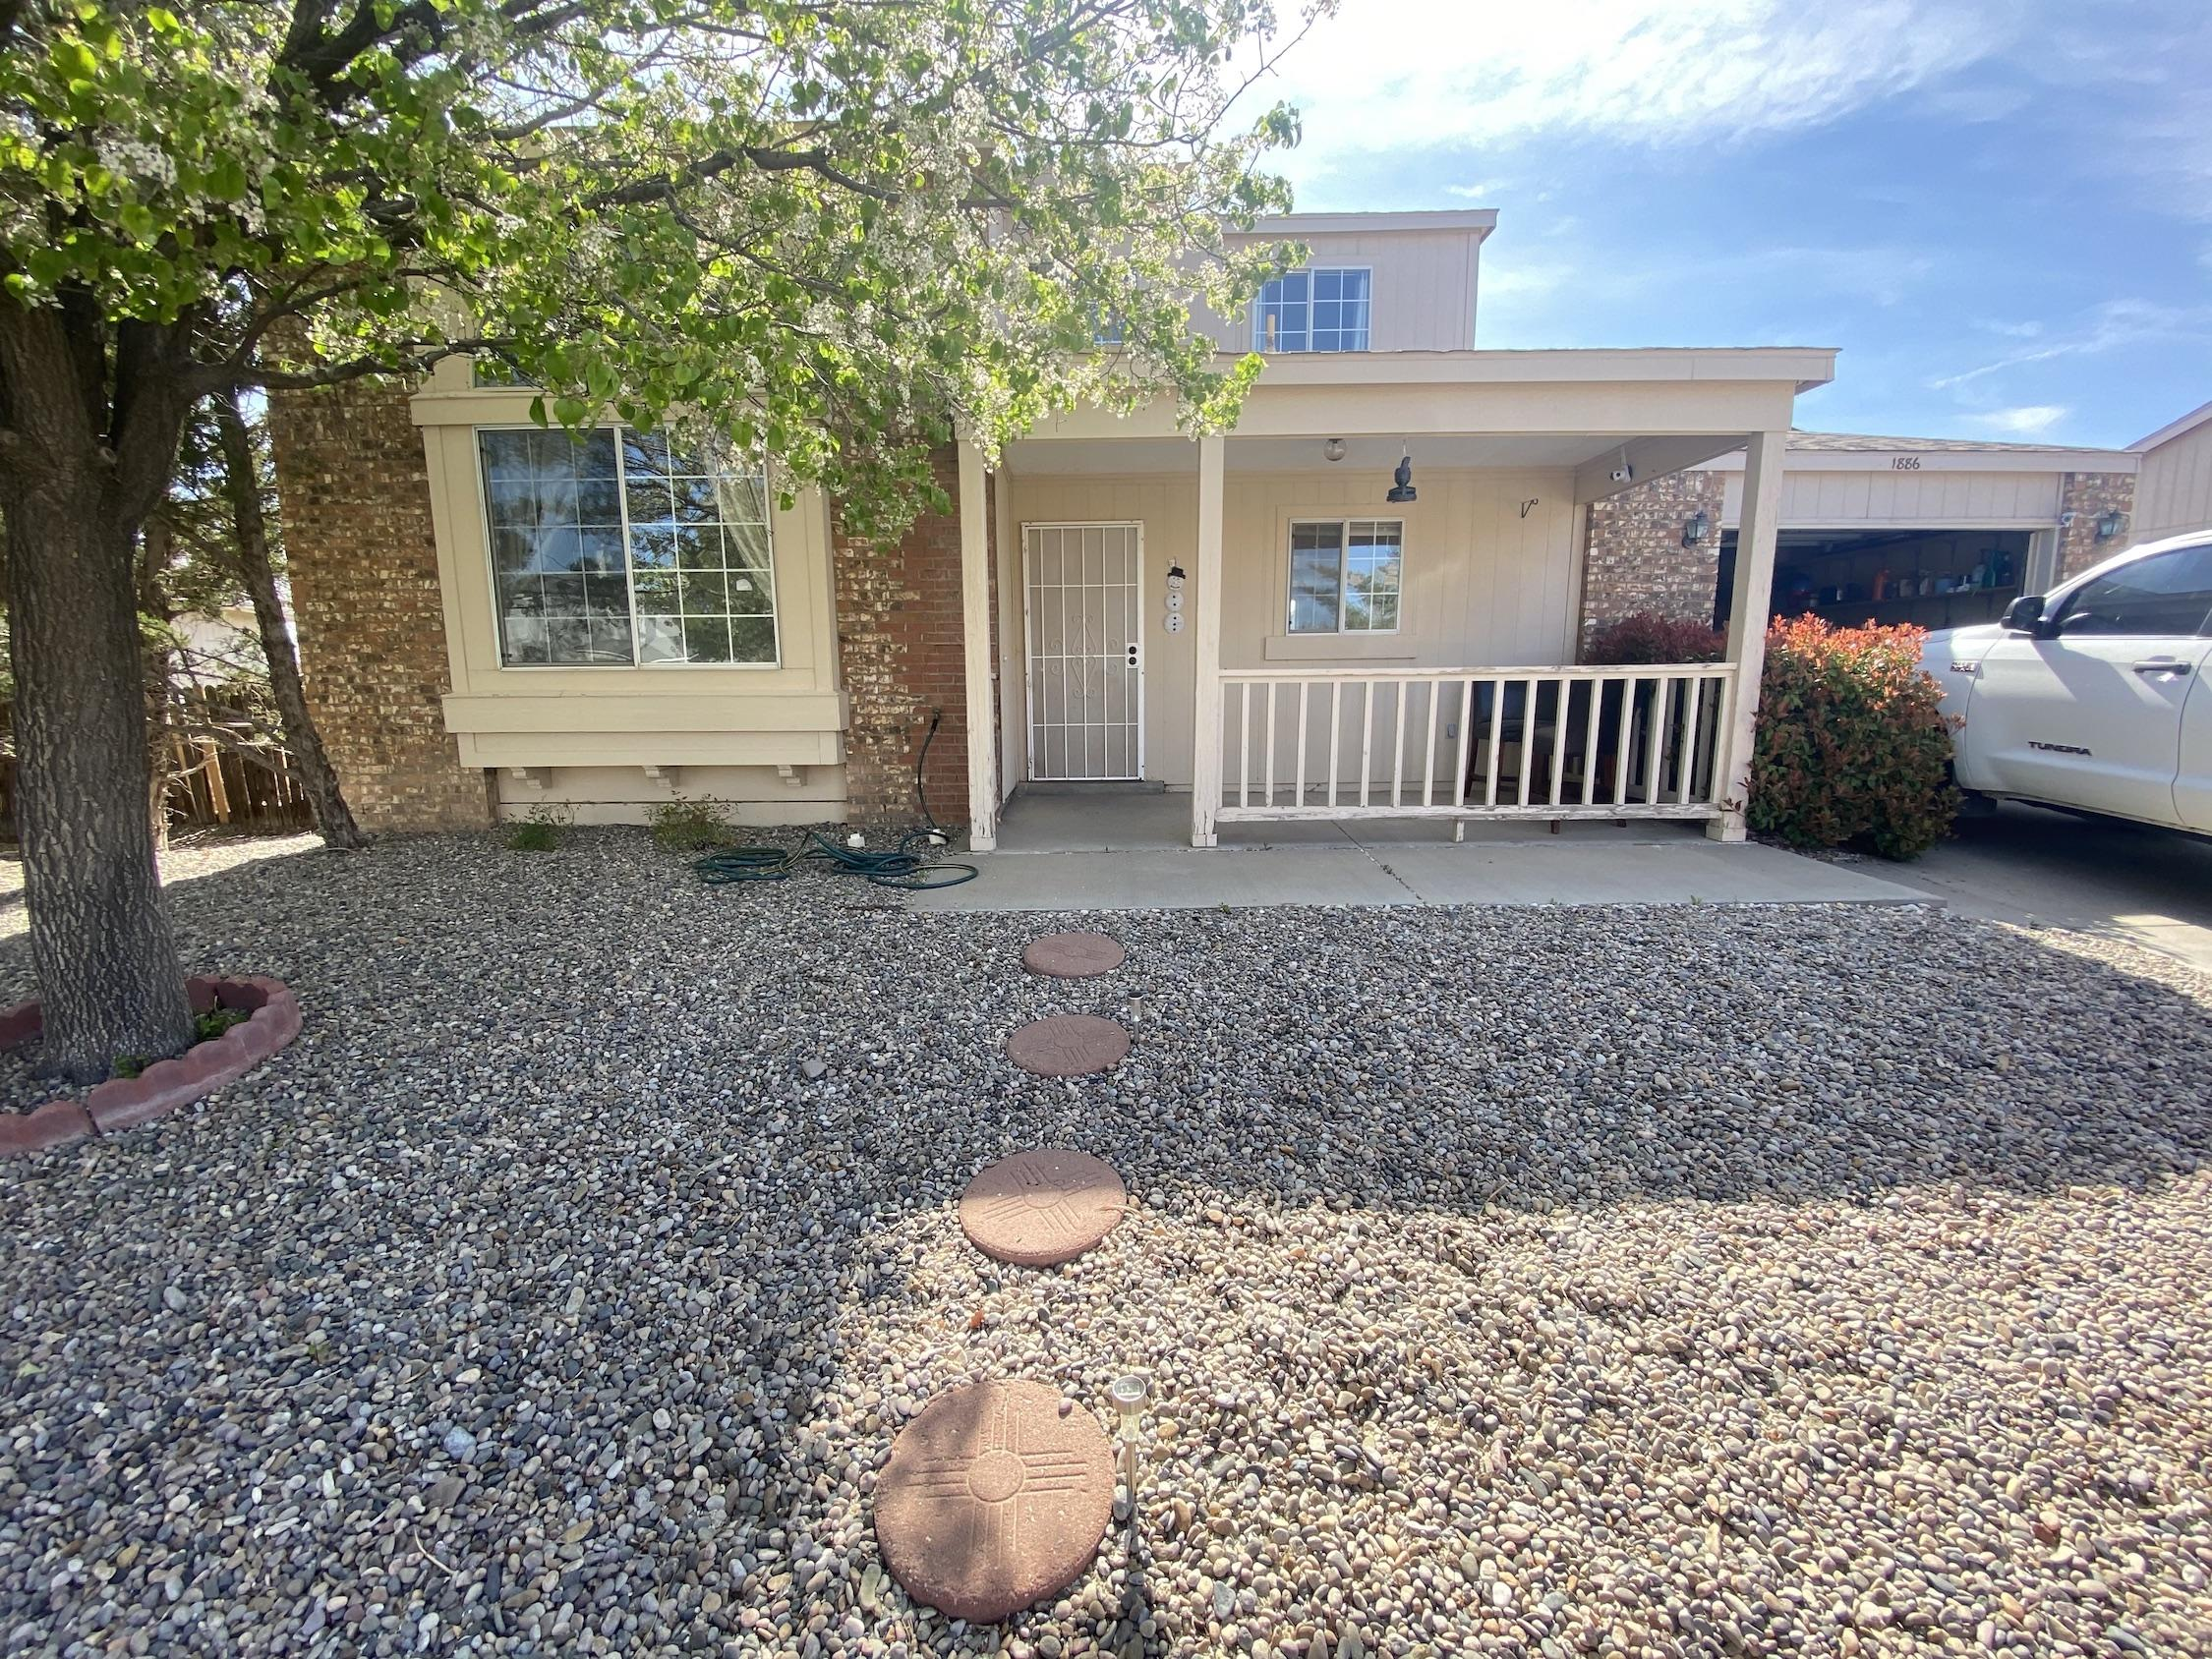 Great home that has really been taken care of. It has beautiful vaulted ceilings and lots of natural light. Floor plan is super convenient with 1 bedroom downstairs. Master bedroom and third bedroom are upstairs. This also includes a large backyard with possible backyard access. Solar panels also a huge plus. Come see it today before it is gone!